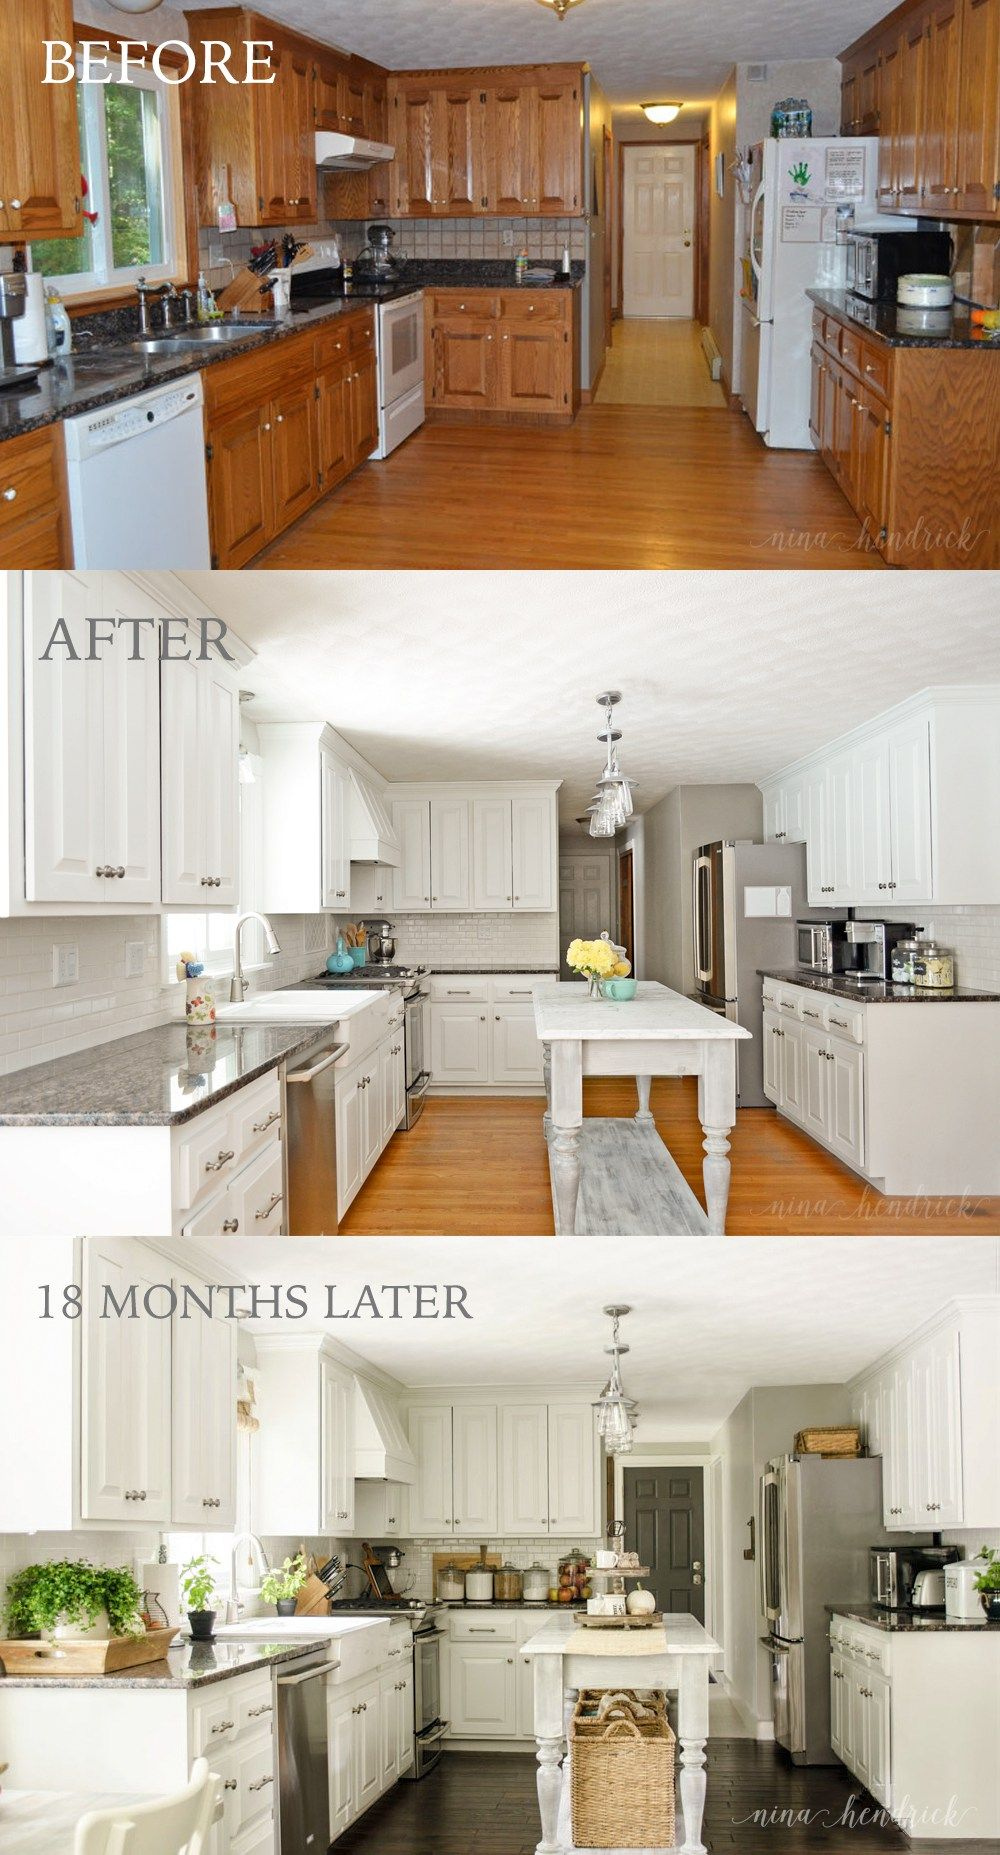 Painted Oak Cabinets In Kitchen With Grain Showing